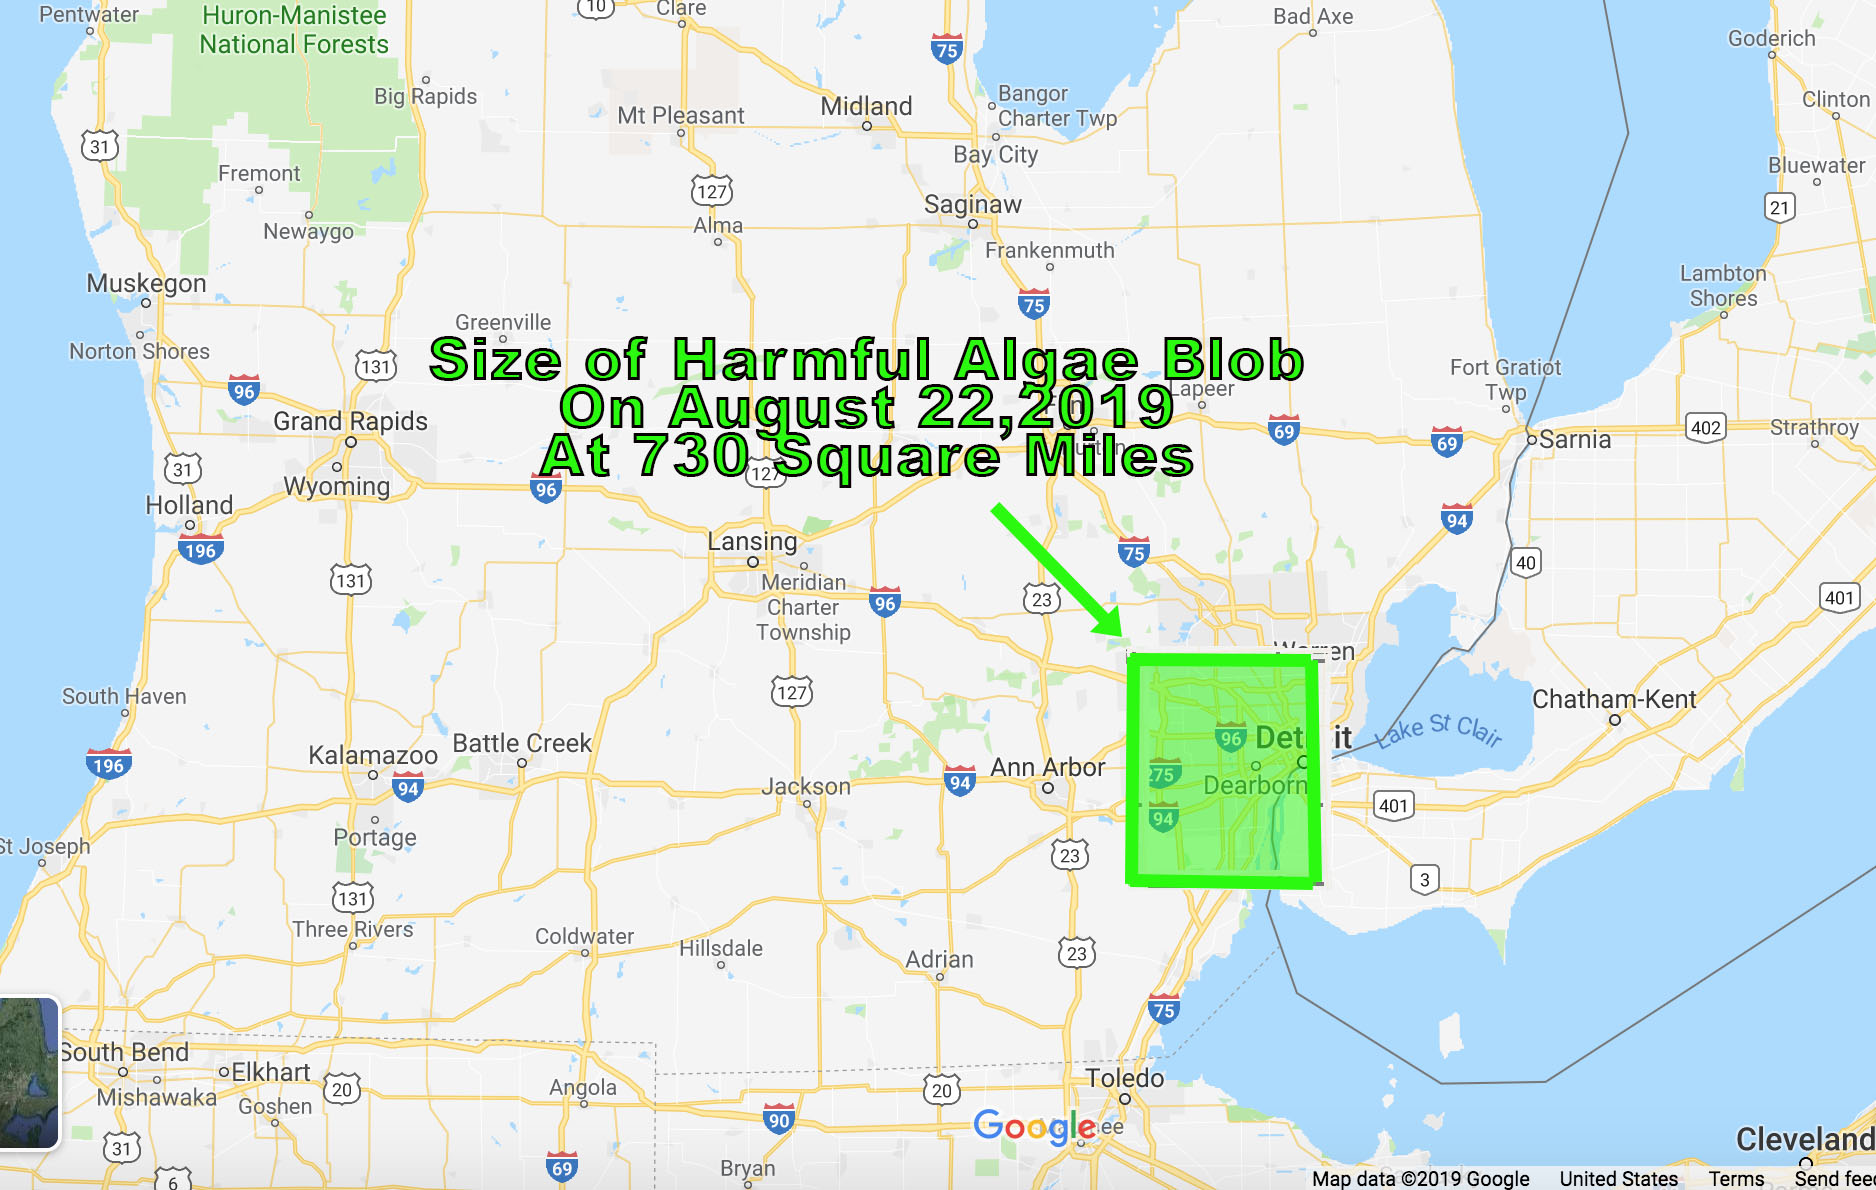 Lake Erie harmful algae blob swelled in last week, see how it compares in size